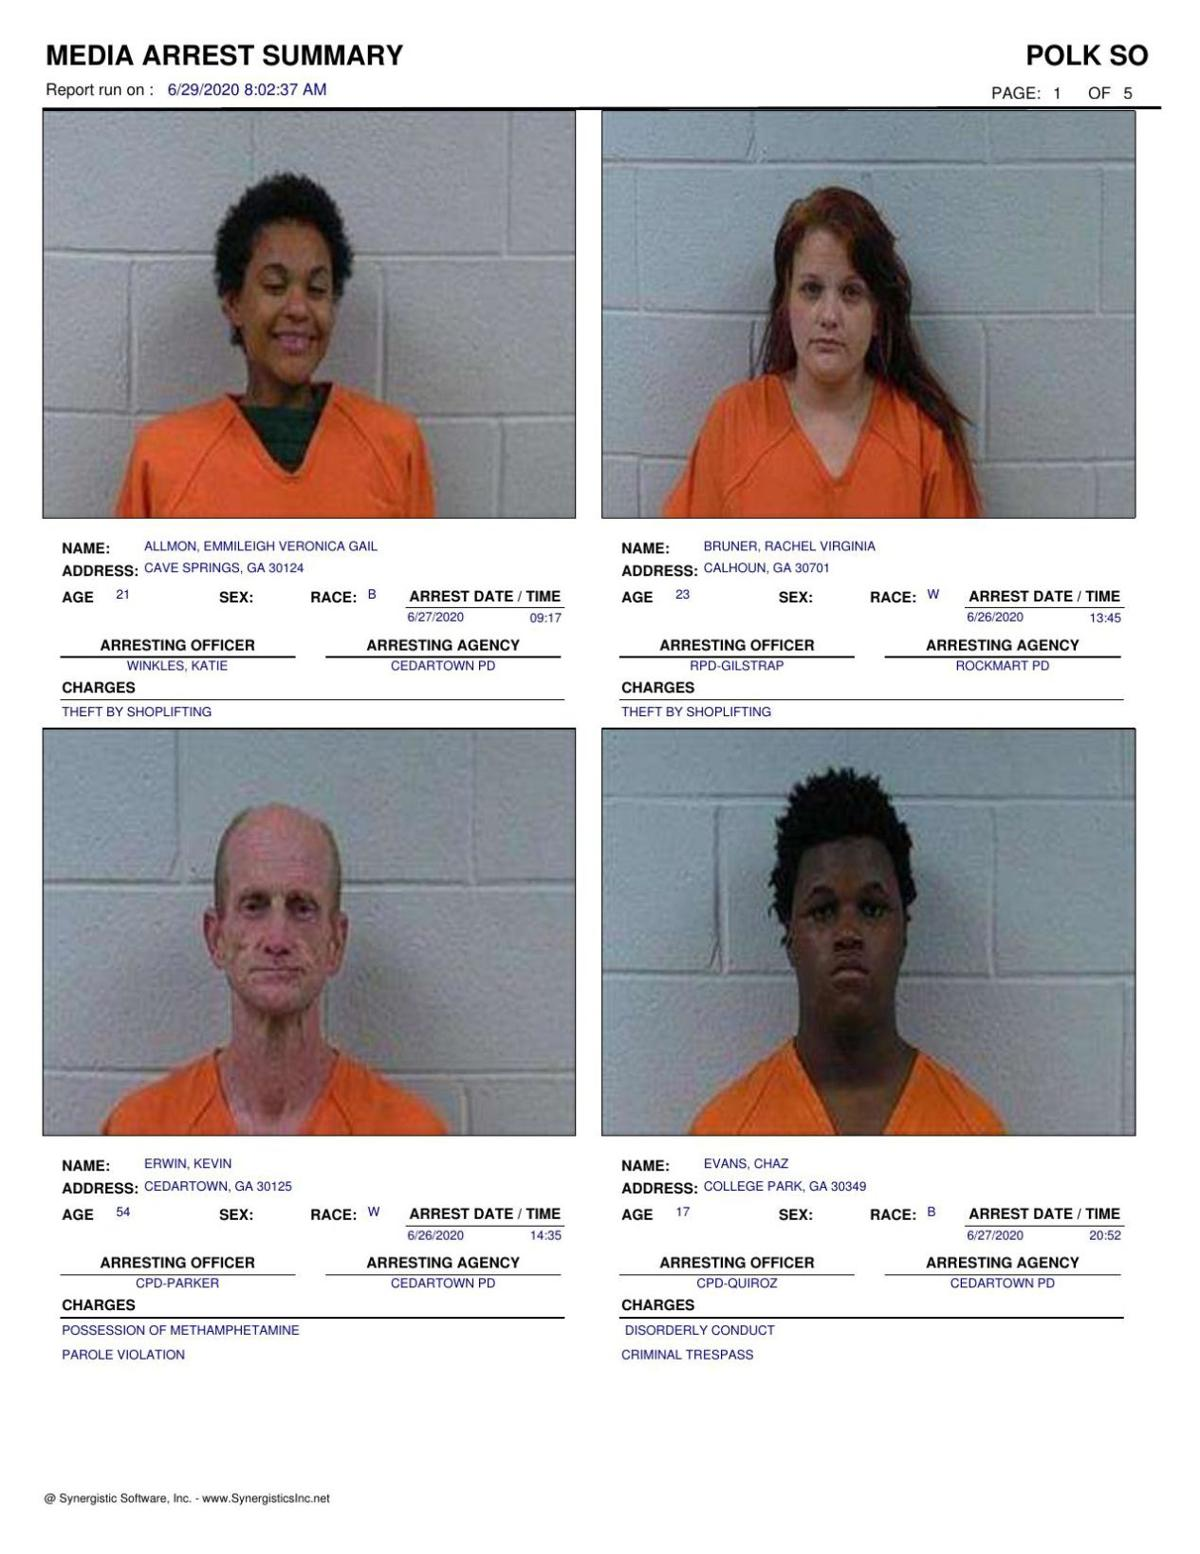 Polk County Jail Report for Monday, June 29